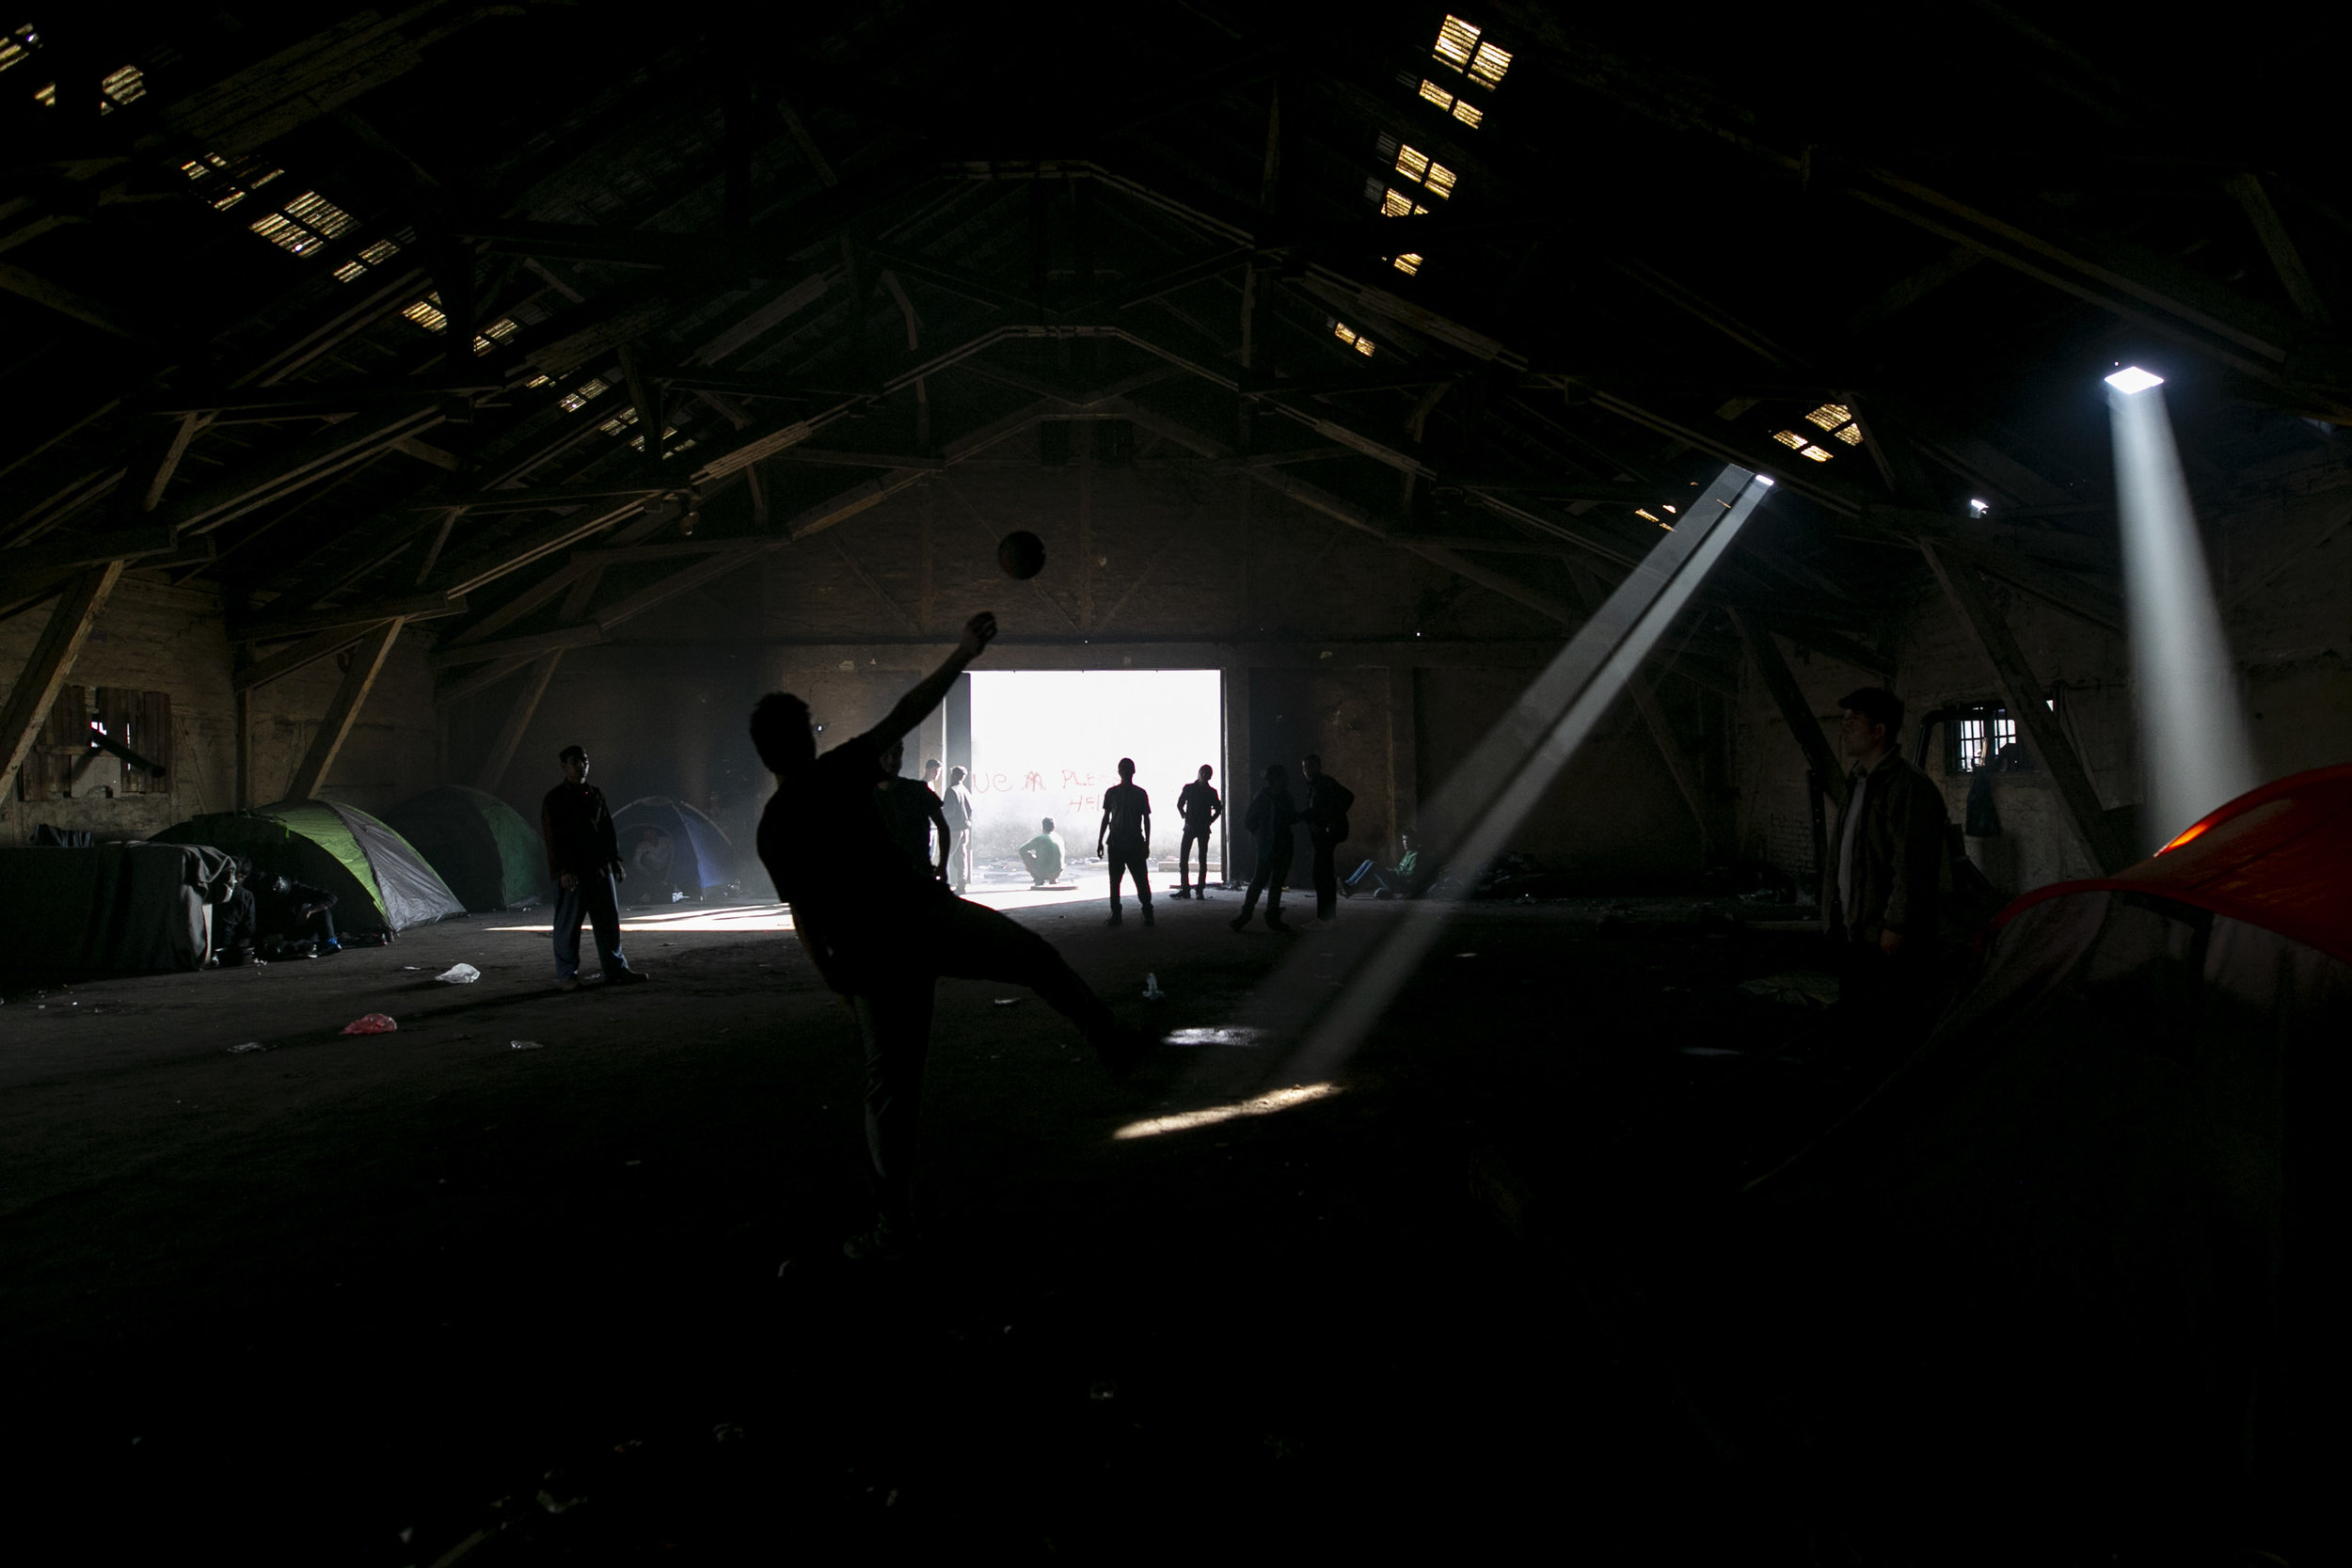 Playing ball in the abandoned warehouse after a majority of refugees were relocated to camp outside of the city. Belgrade, Serbia.